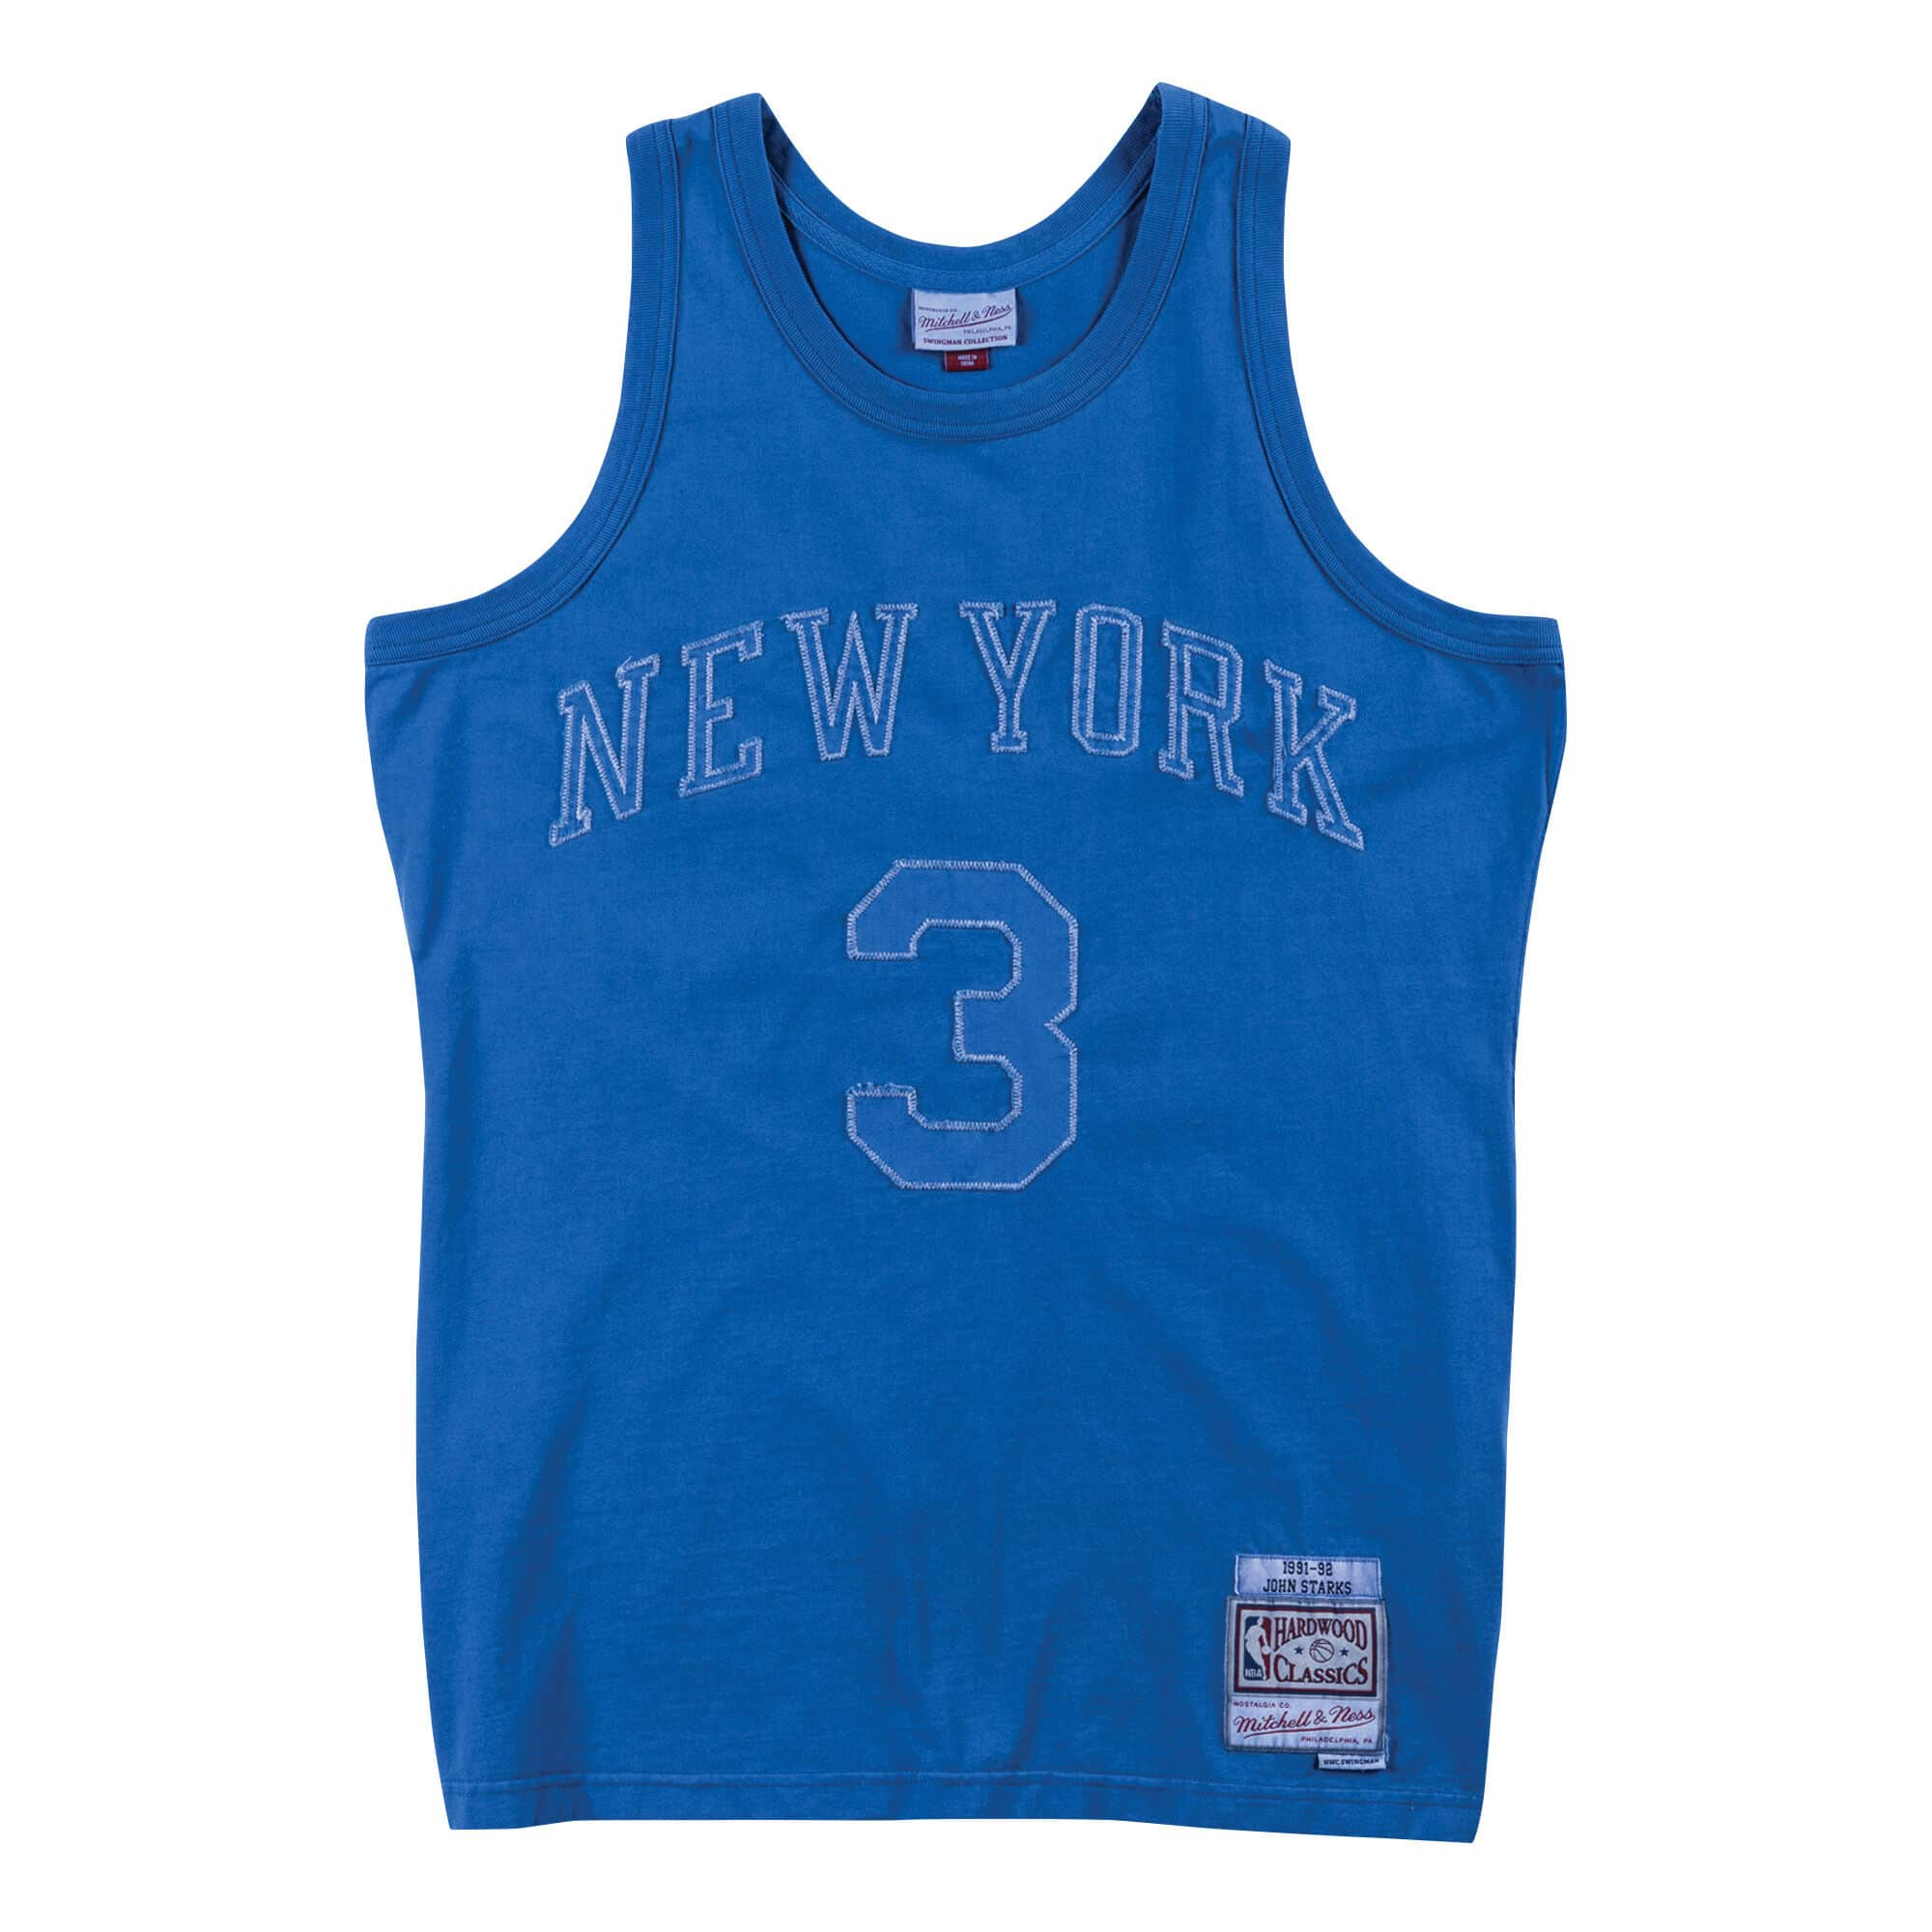 Washed Out Swingman Jersey New York Knicks 1991-92 John Starks